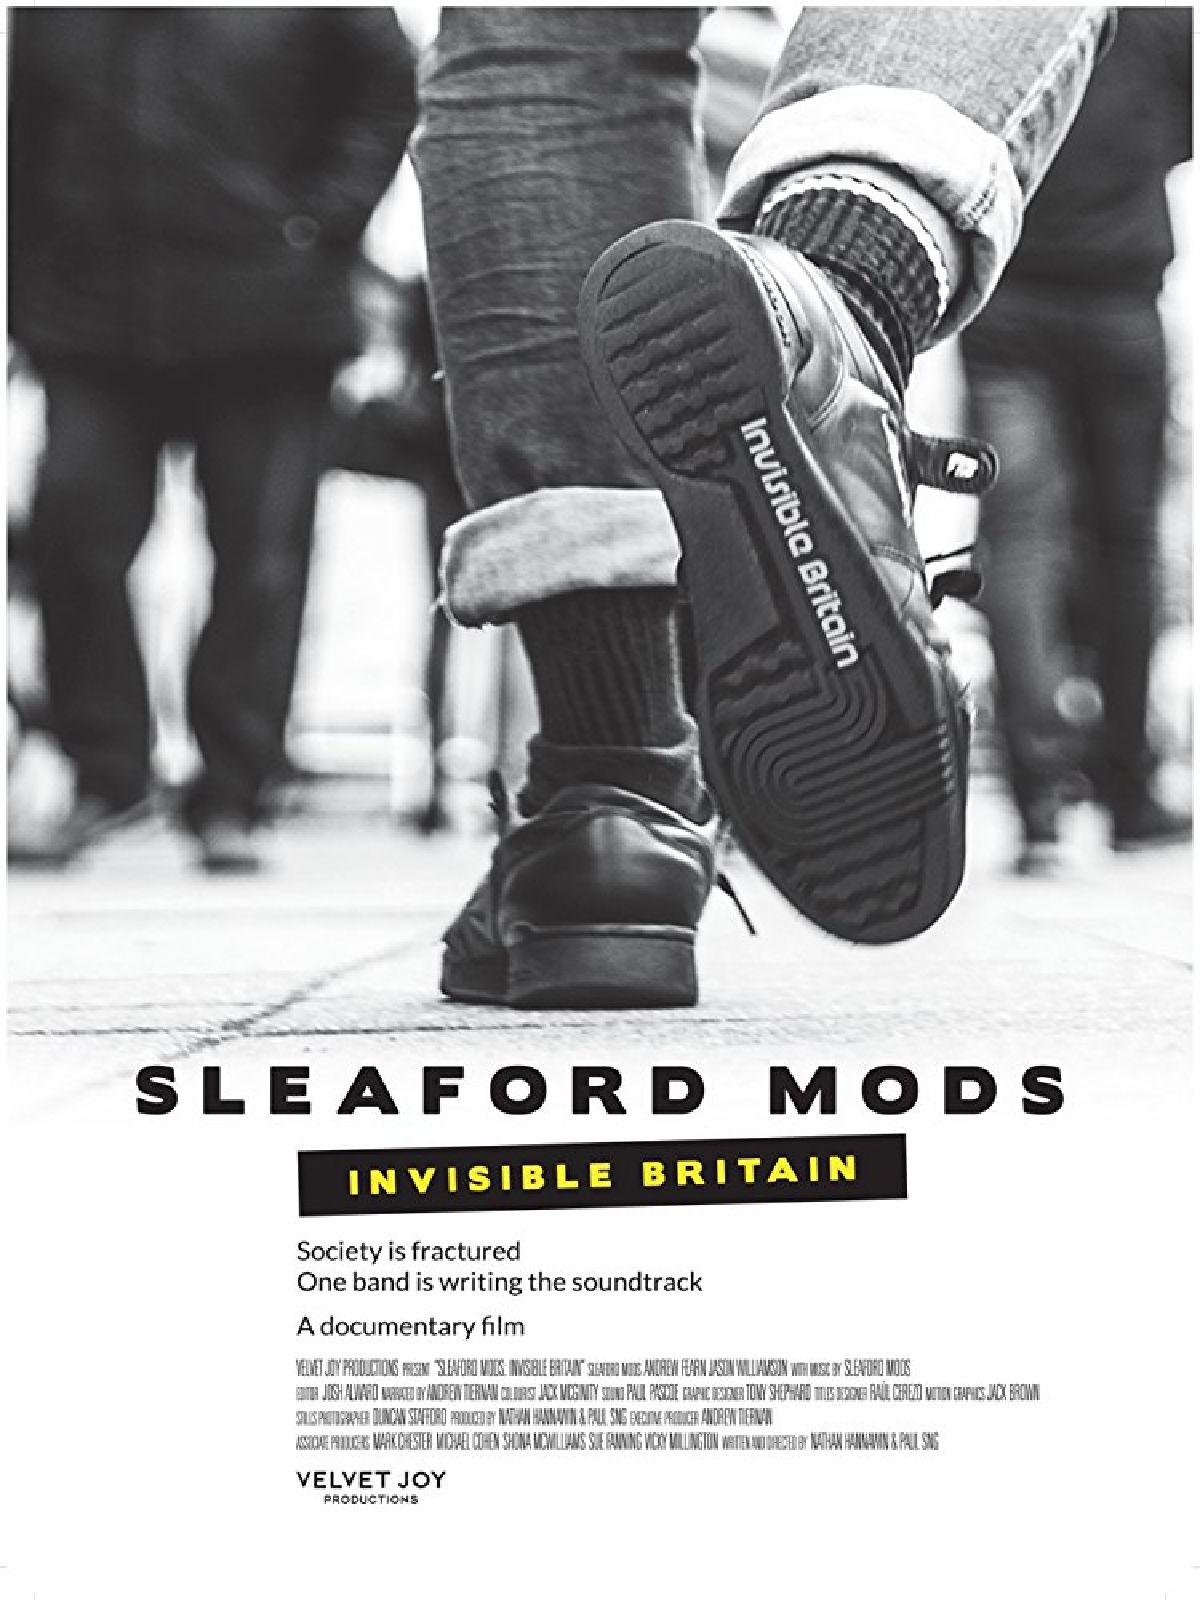 'Sleaford Mods: Invisible Britain' movie poster